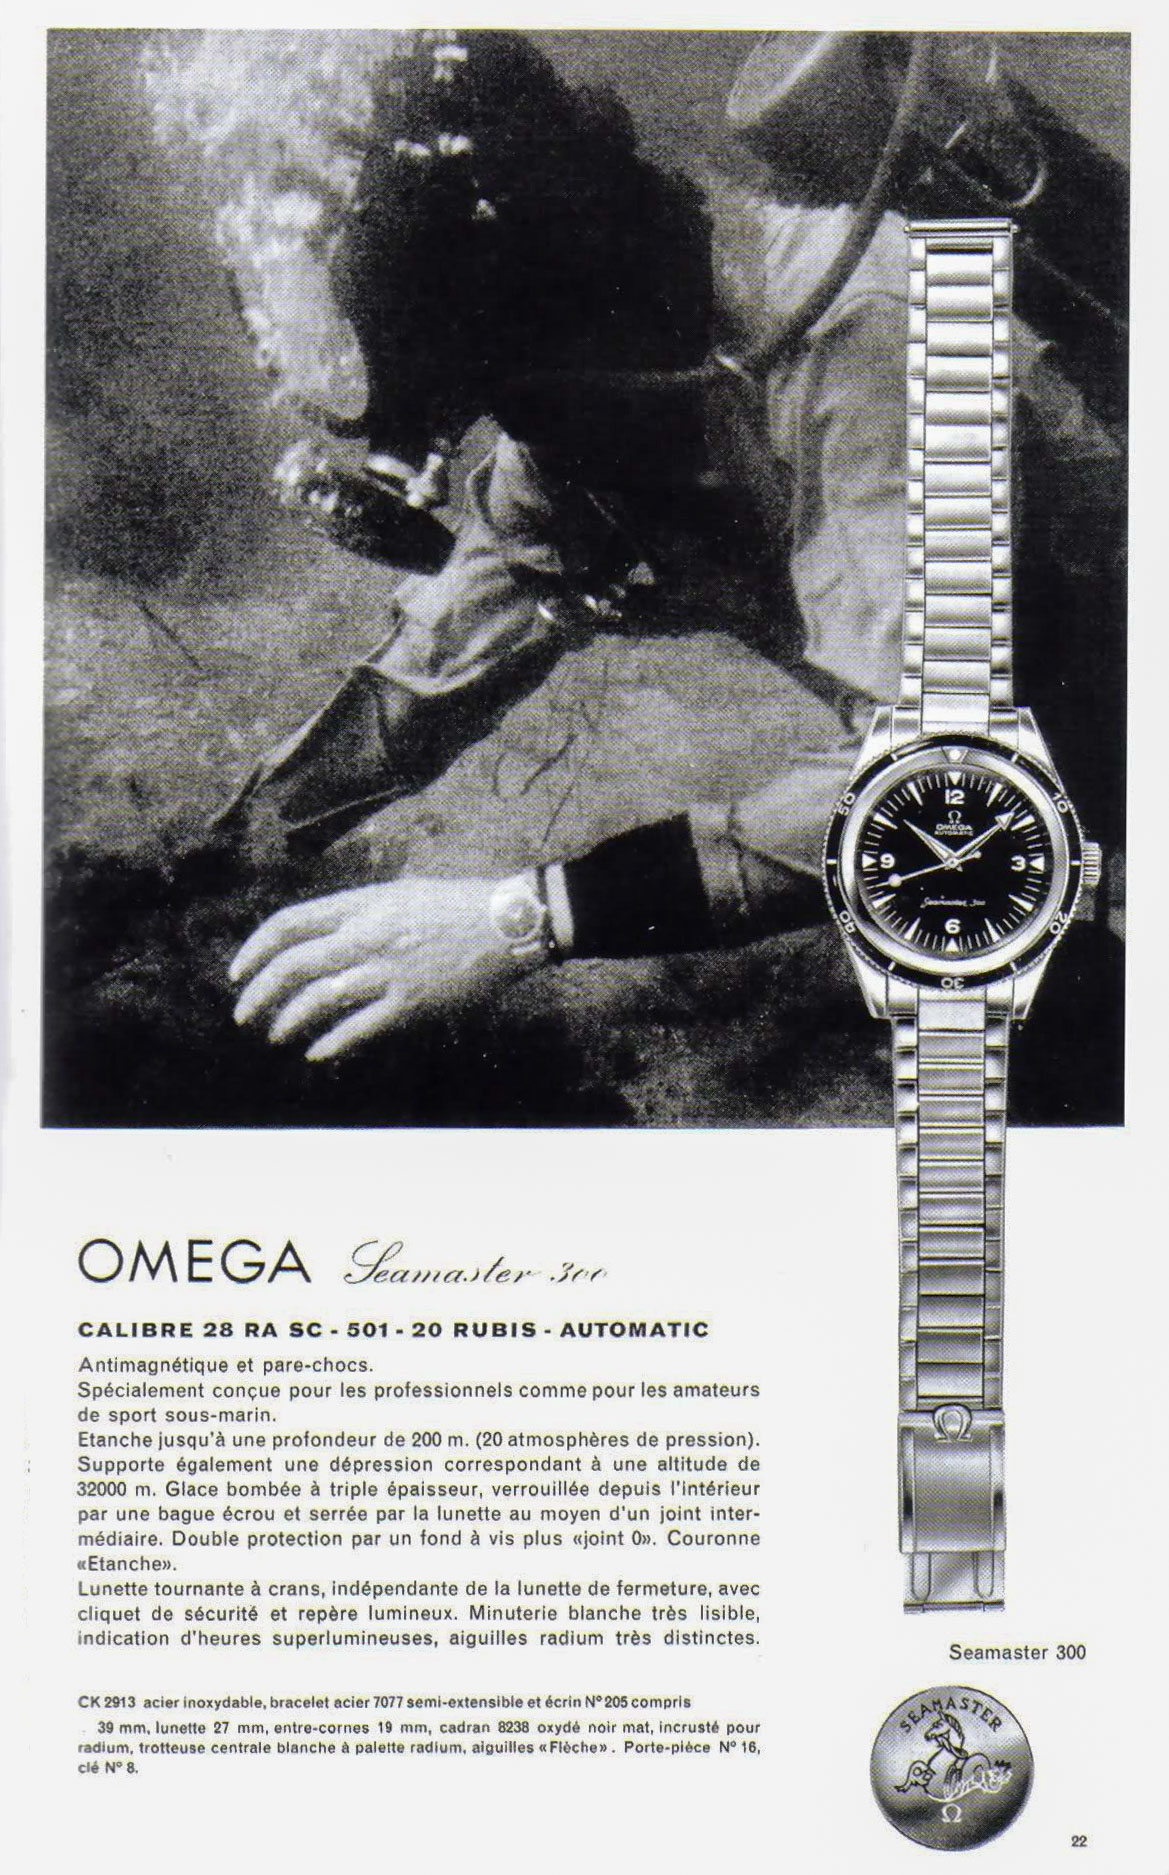 CK2913 vintage advertisement Image courtesy of Kox (Omega Forums)